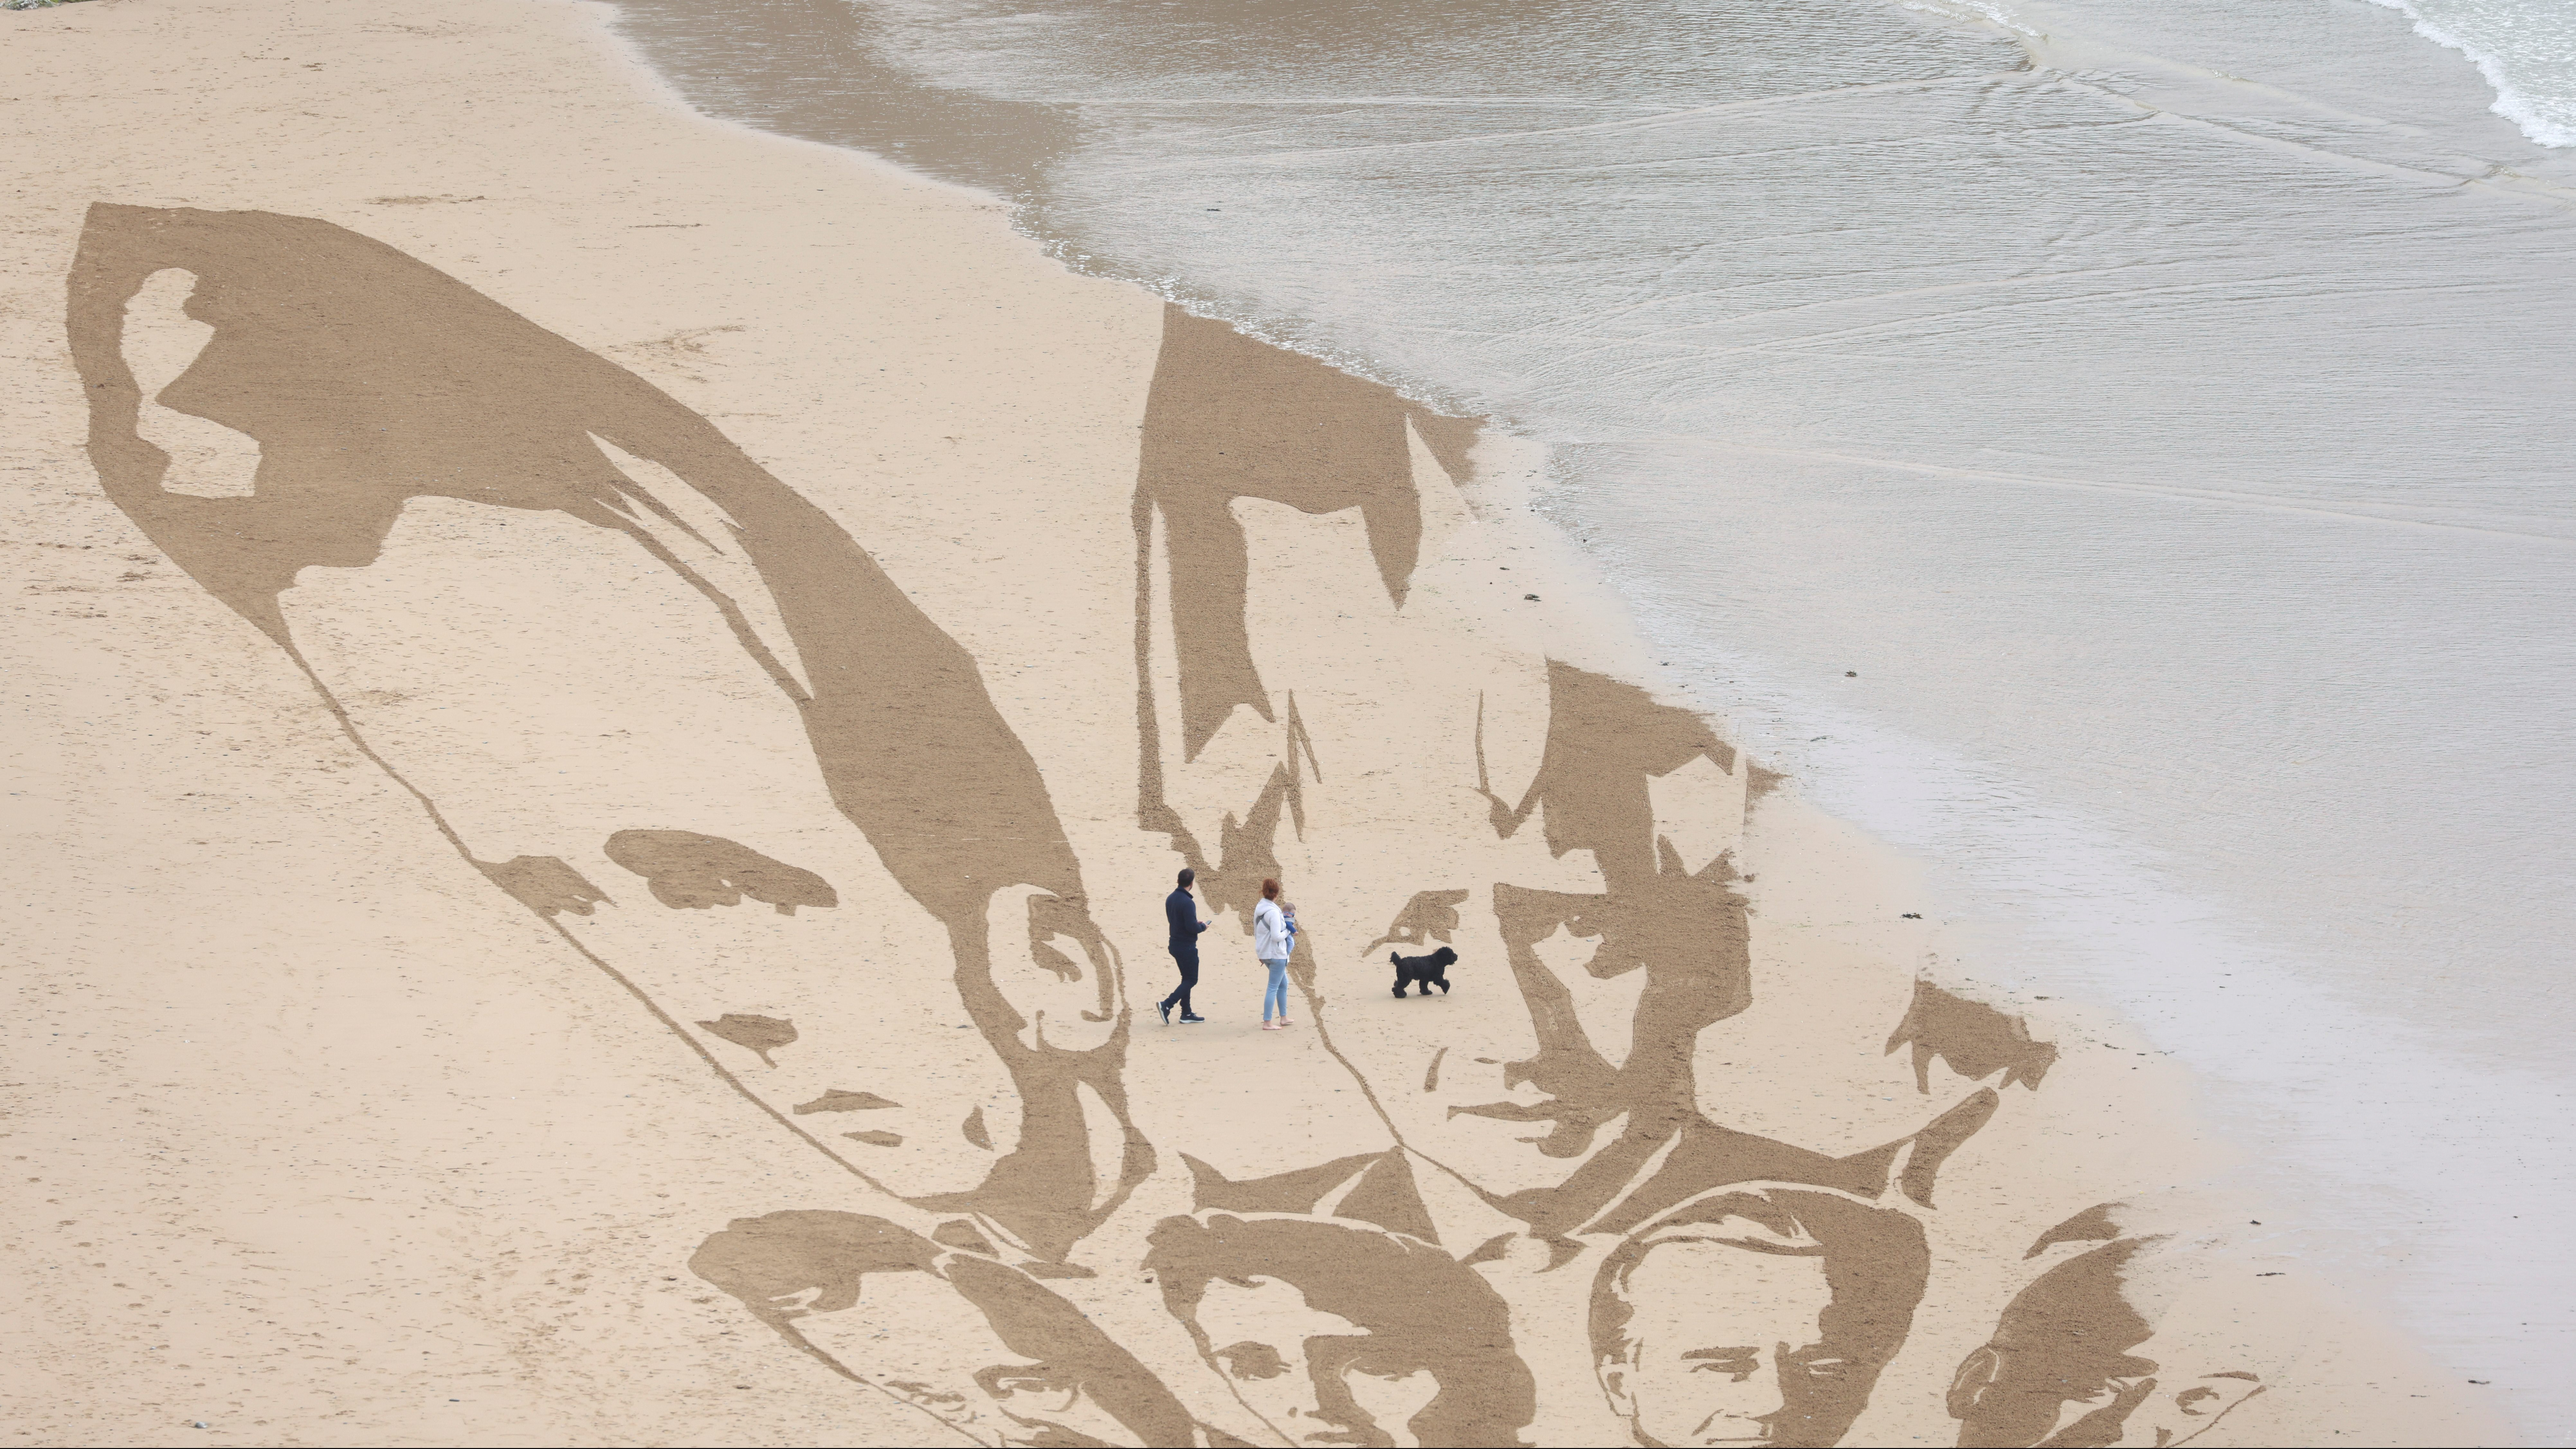 Campaign group Avaaz create a giant beach sand artwork depicting the faces of the G7 leaders